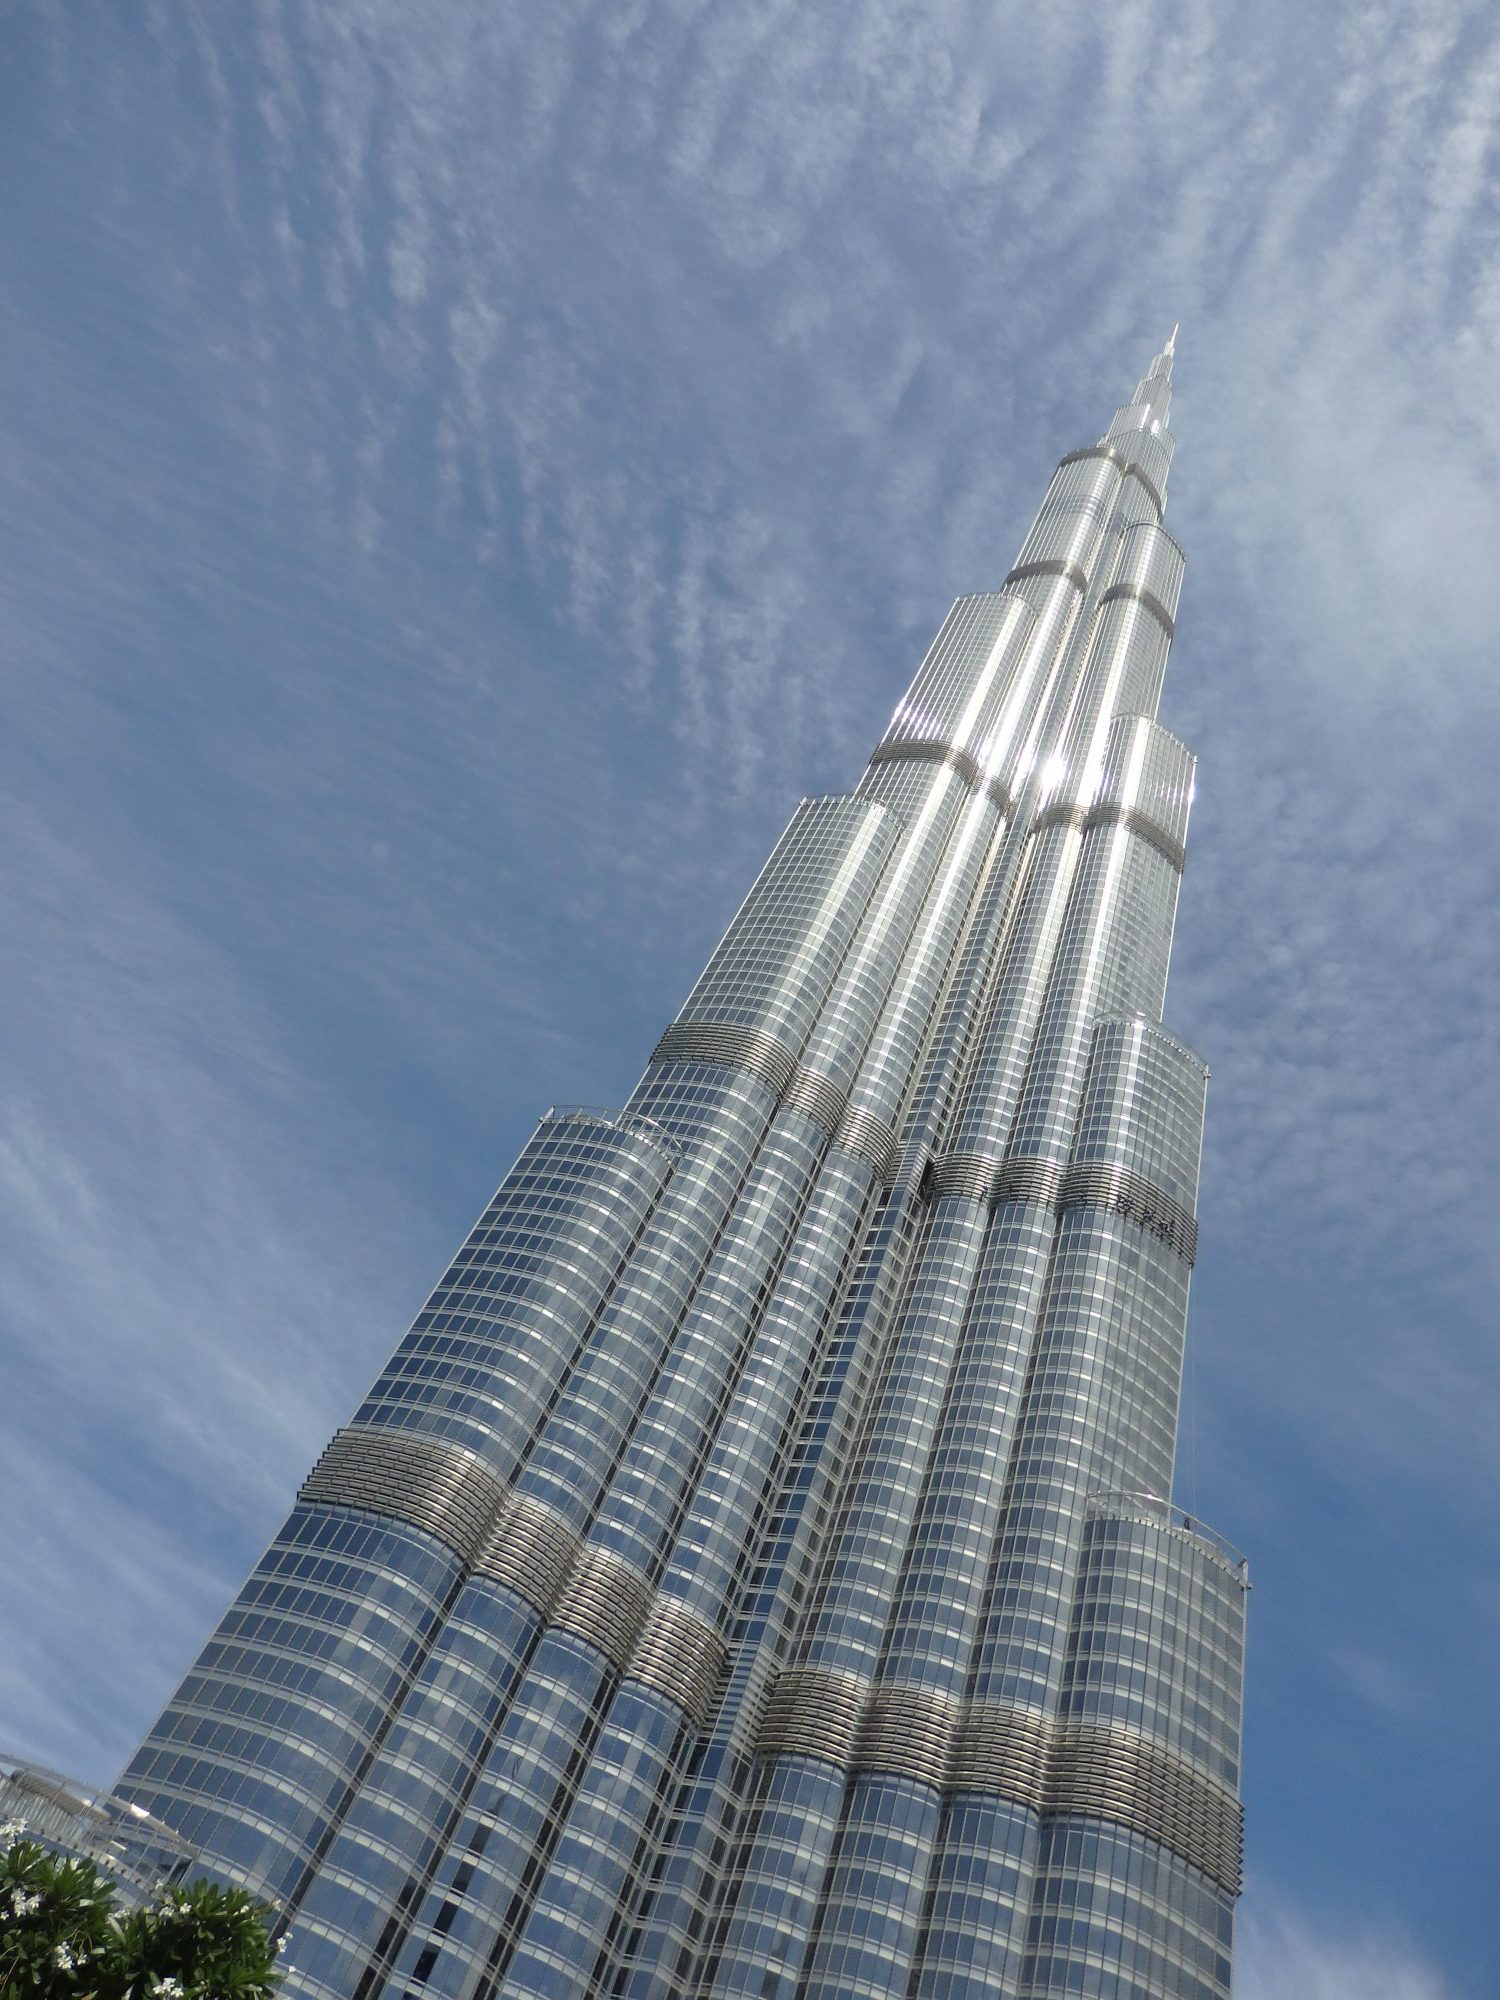 looking up at the Burj Khalifa in Dubai